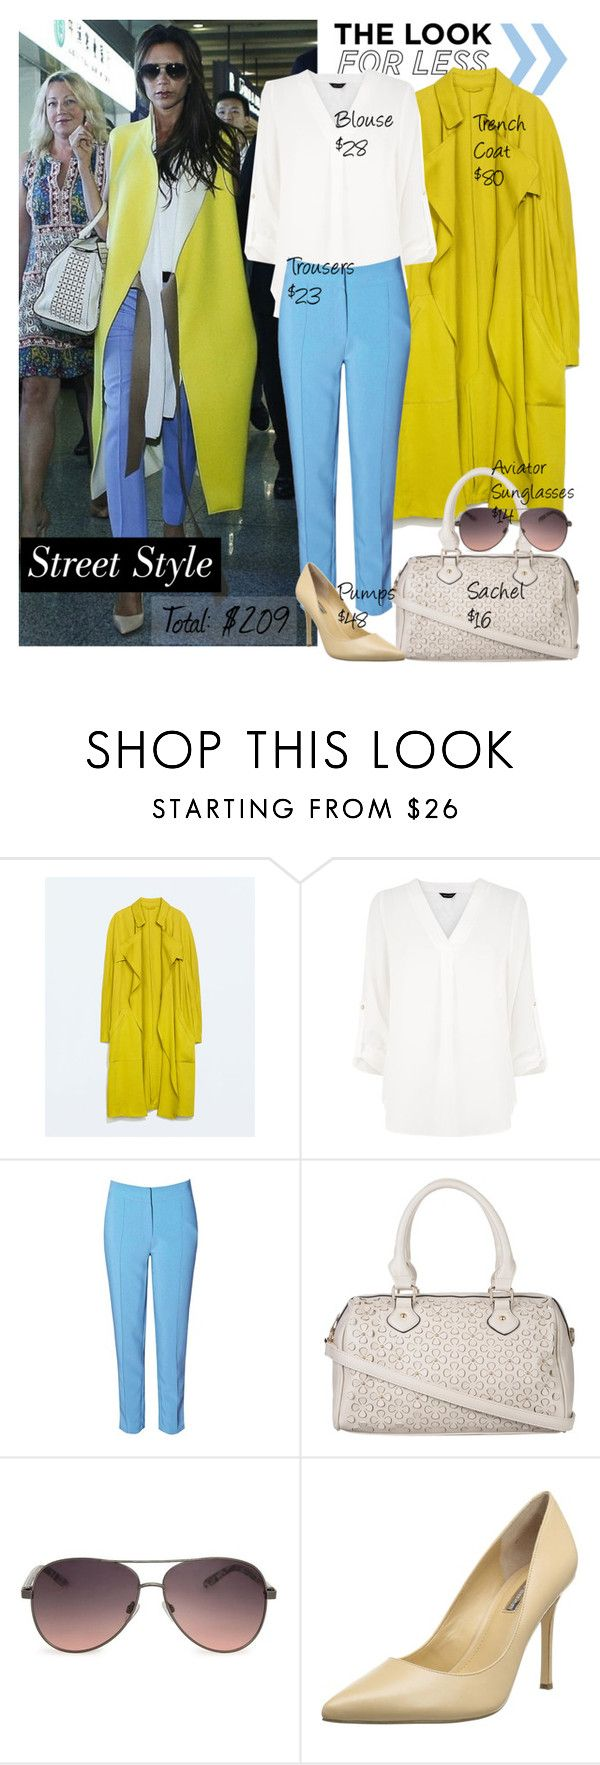 """""""Look for Less: Victoria Beckham"""" by junglover ❤ liked on Polyvore featuring Silver Spoon Attire, Zara, True Decadence, Atmos&Here, MANGO, BCBGeneration and LookForLess"""